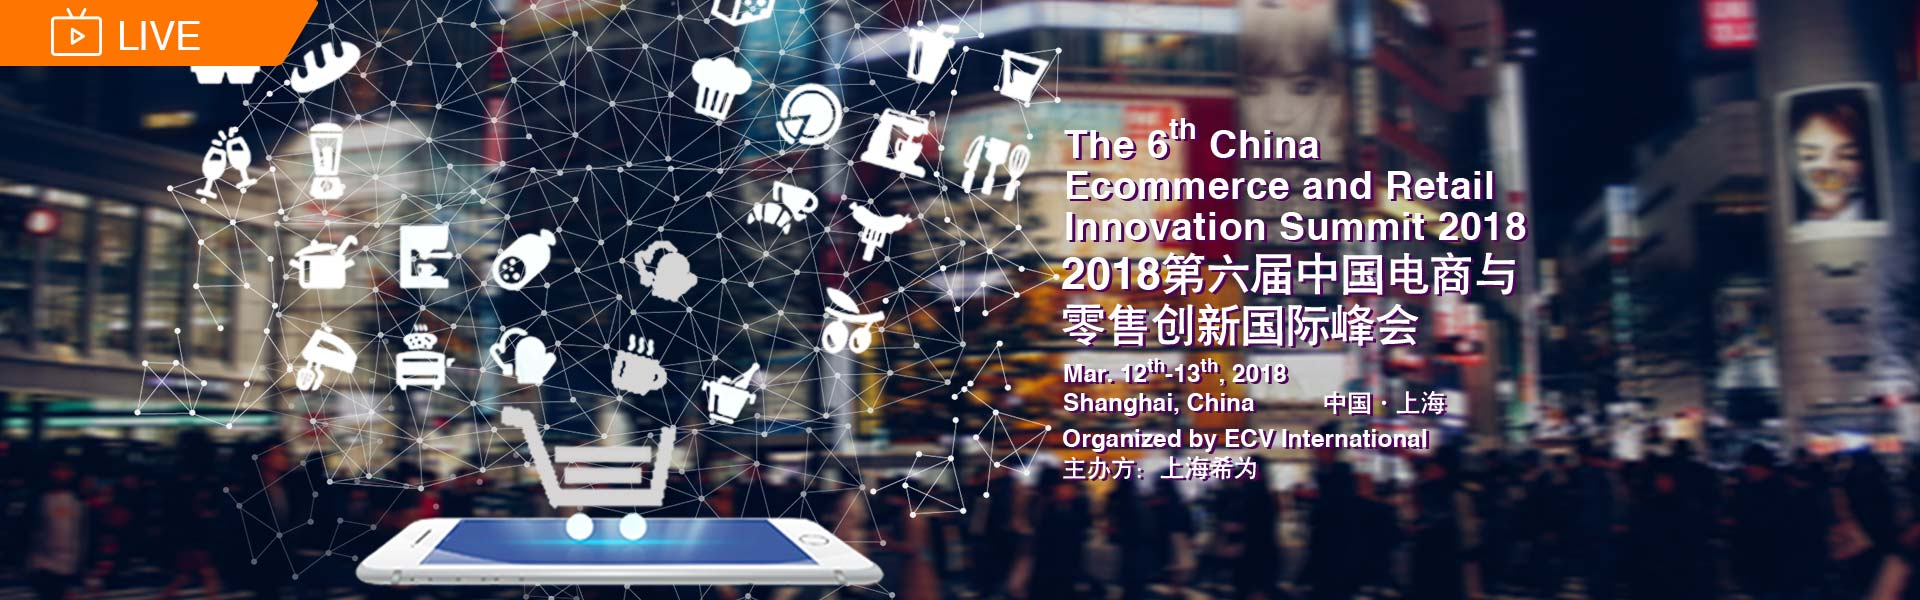 The 6th China Ecommerce and Digital Retail Innovation Summit 2018